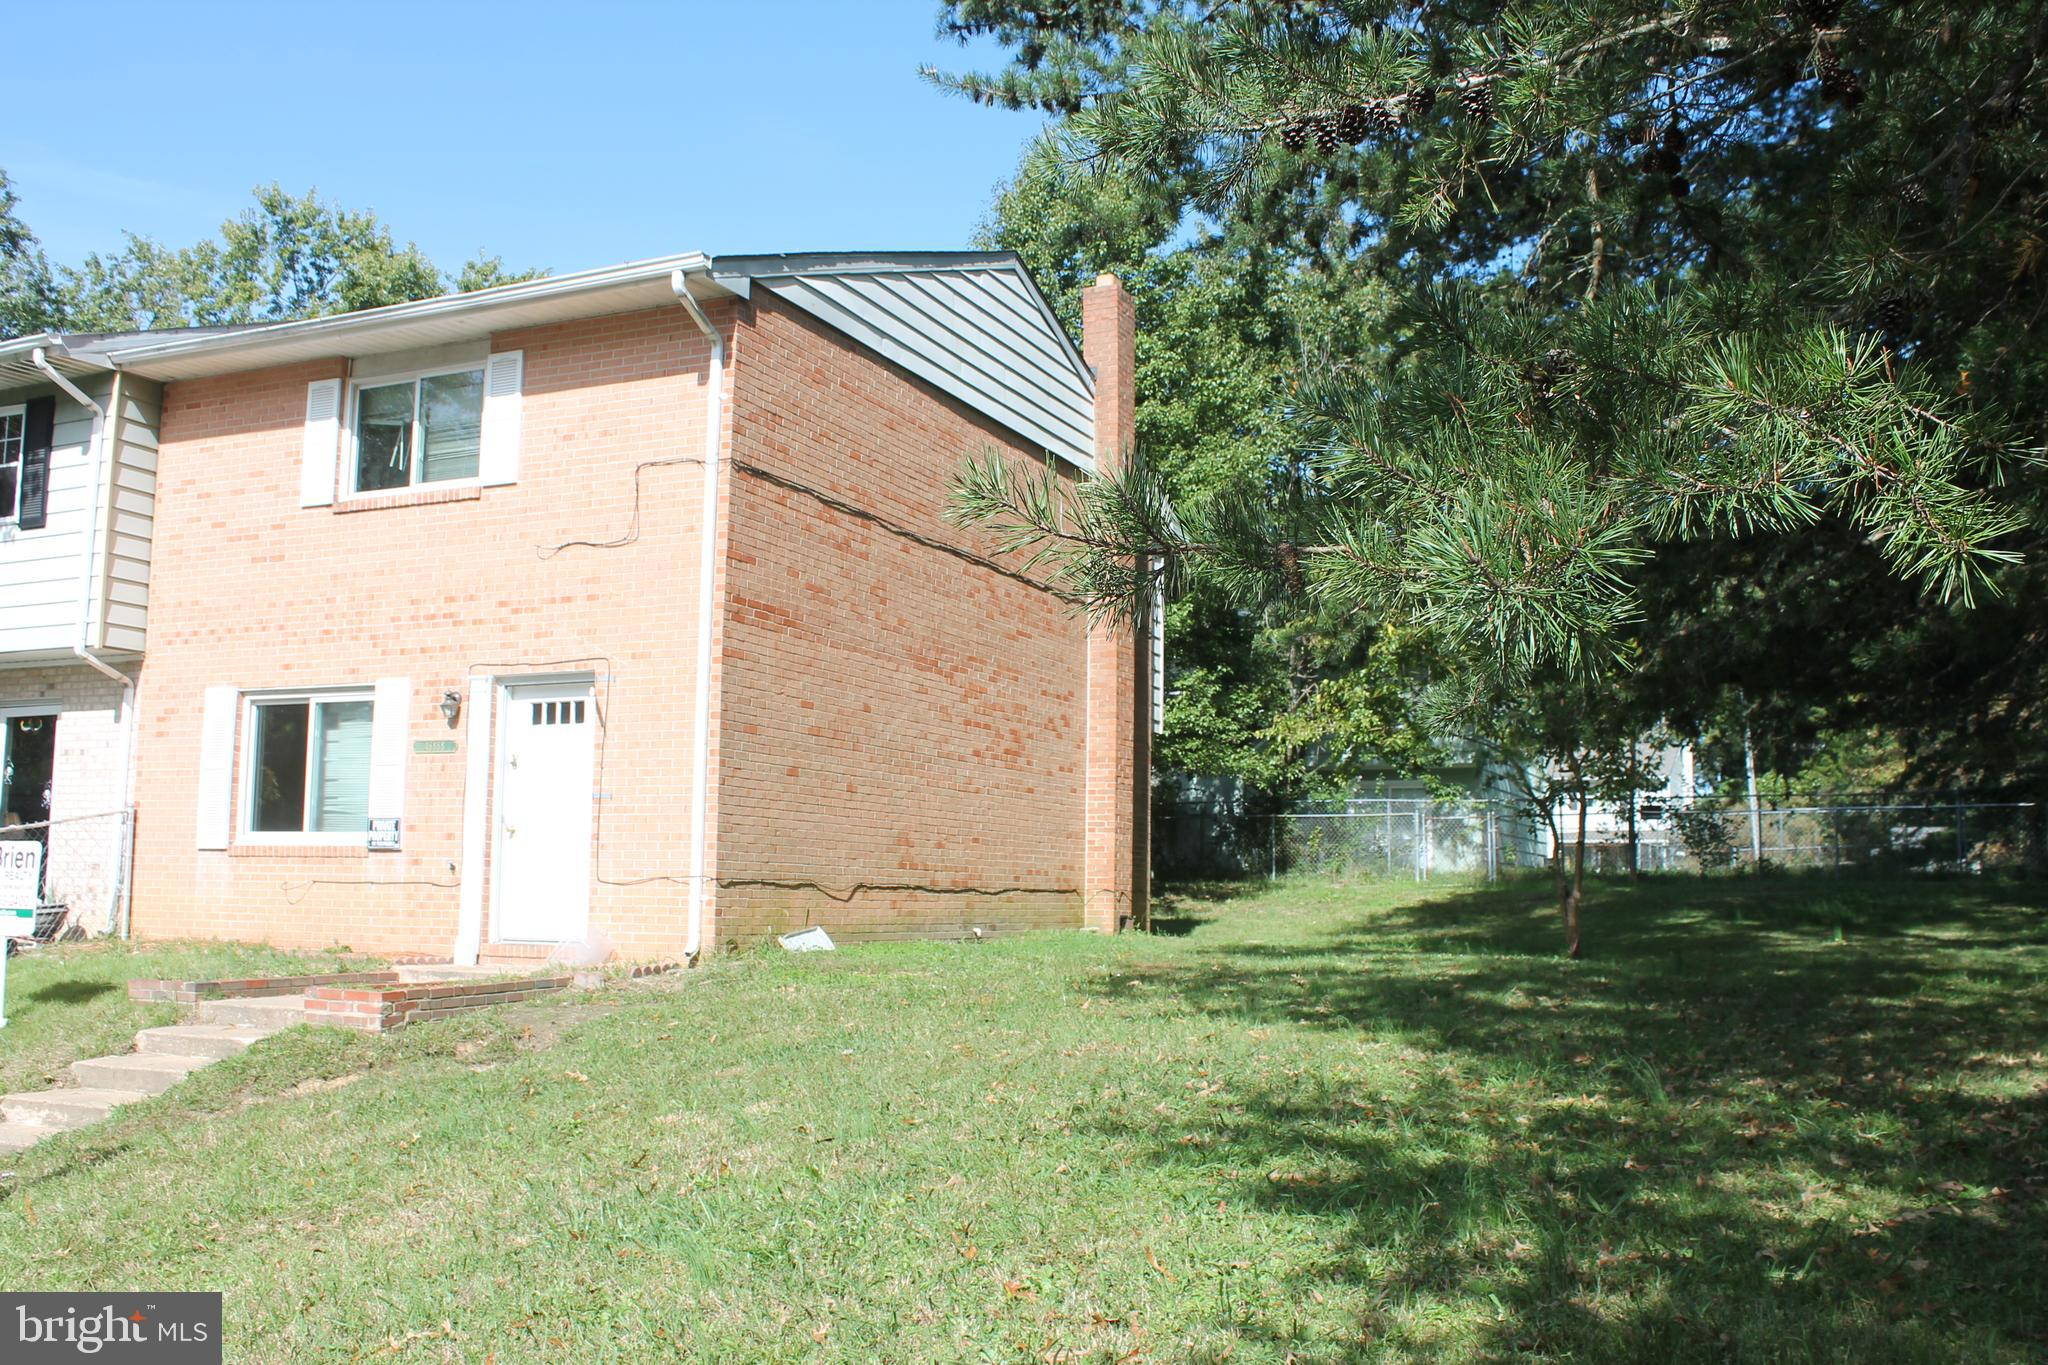 End unit town home with 3 bedrooms and 1.5 baths. nice back/side yard, and the road is being updated